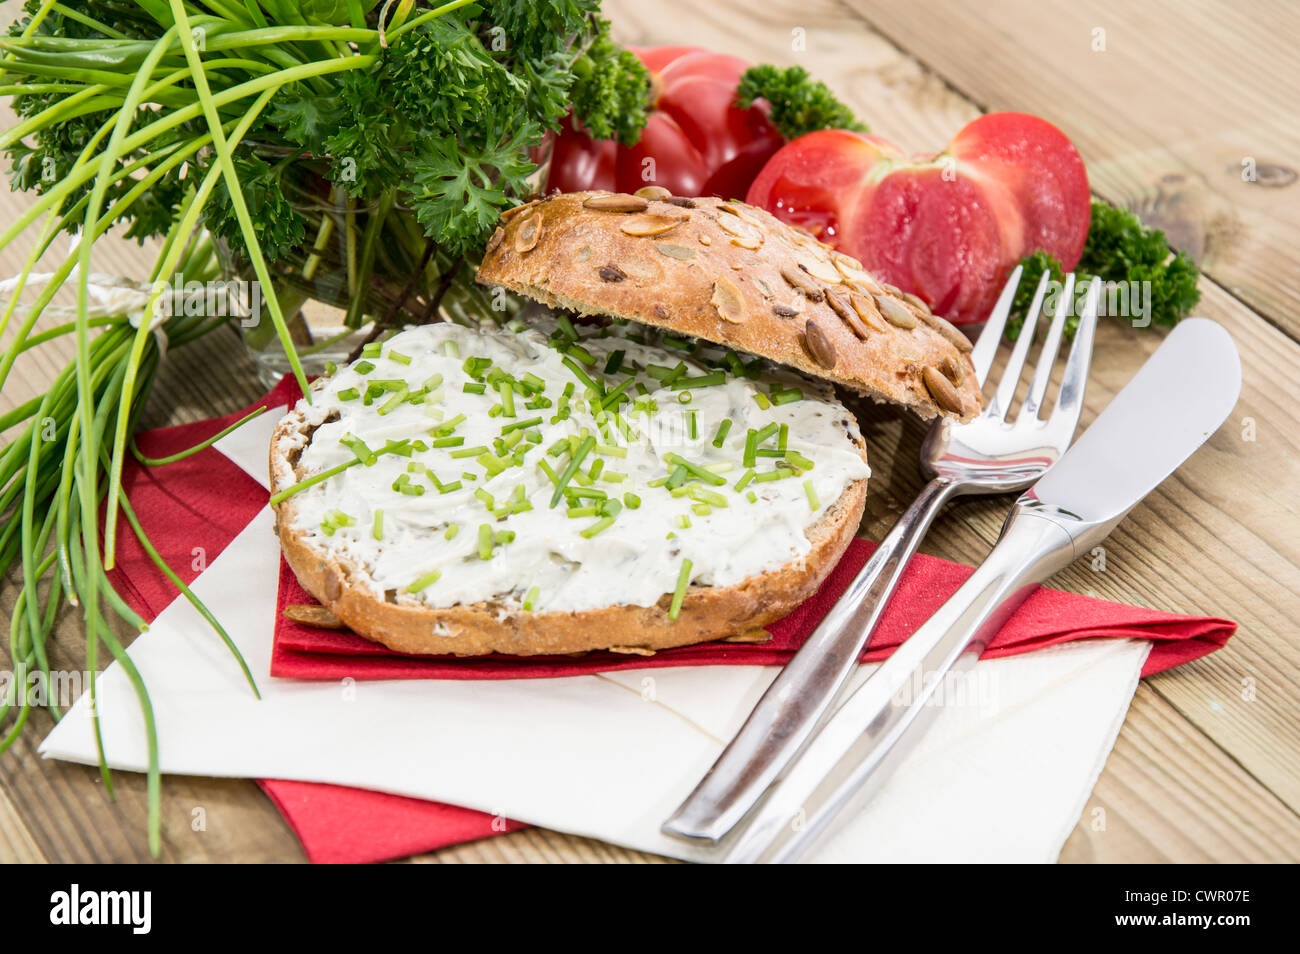 Fresh Creme Cheese on a roll topped with Chives - Stock Image